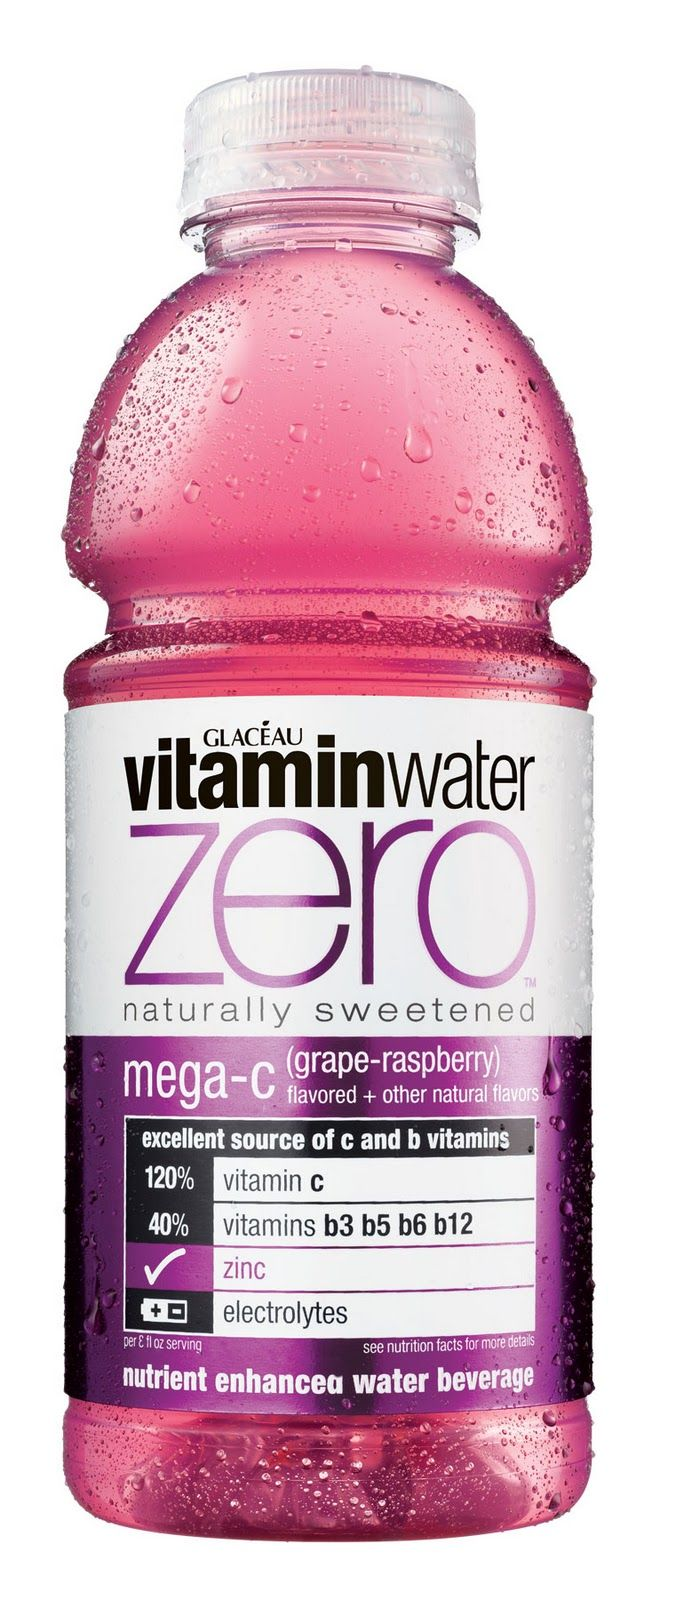 Glaceau Vitamin Water Zero | Get your Vitamins for the Holidays with Vitaminwater Zero